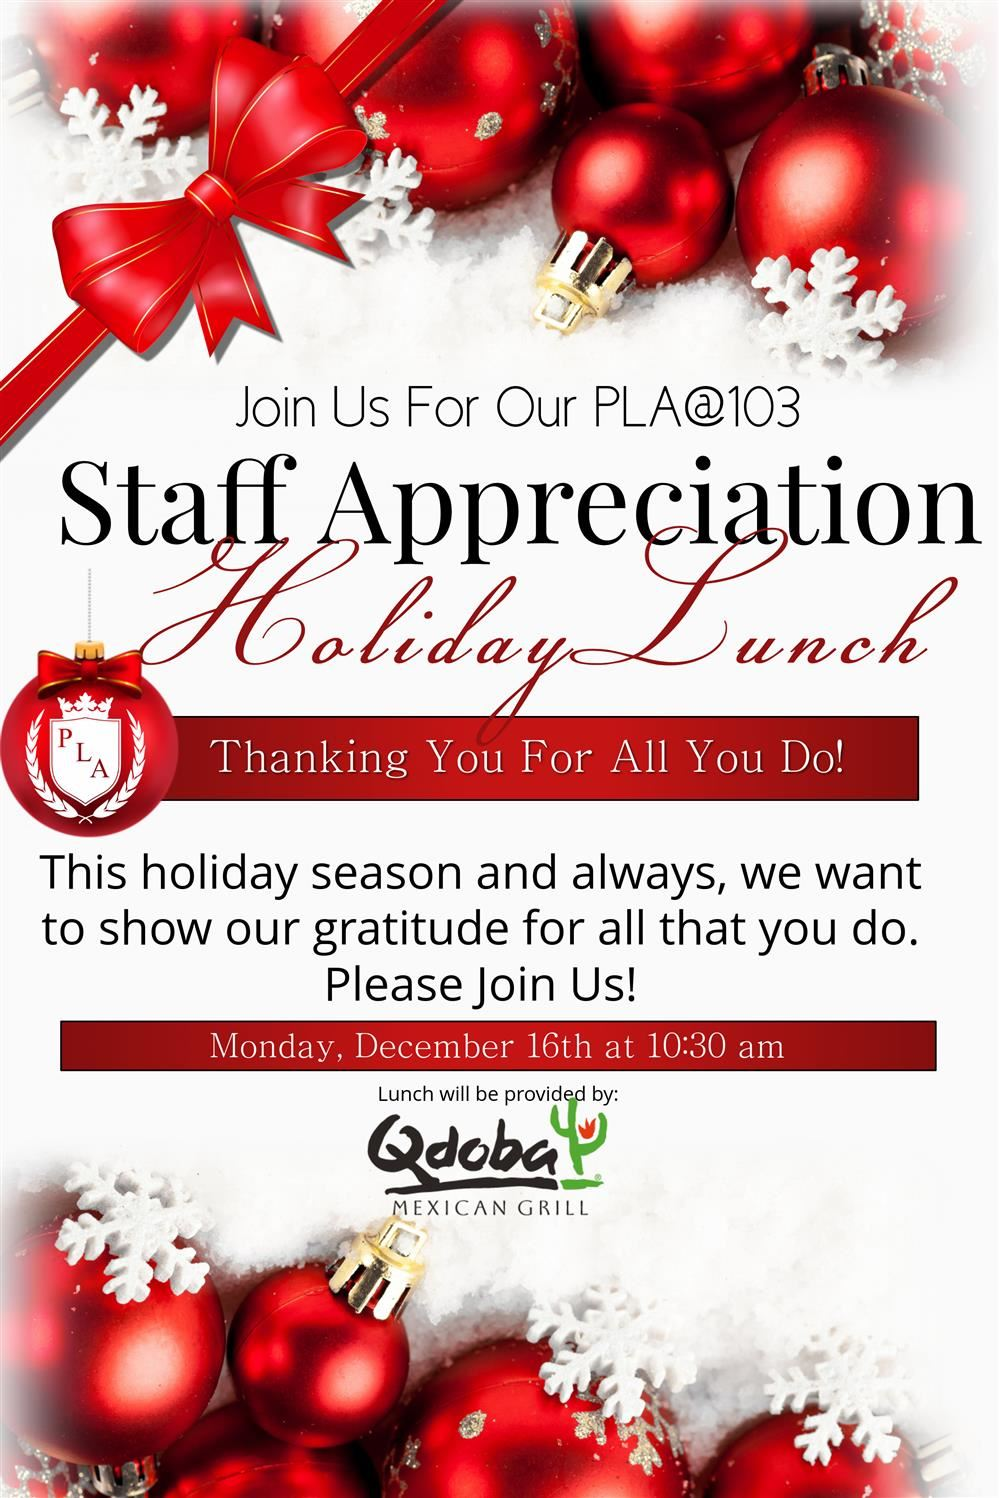 Thank you PLA@103 Staff! Please join us Monday for our Staff Appreciation Lunch.